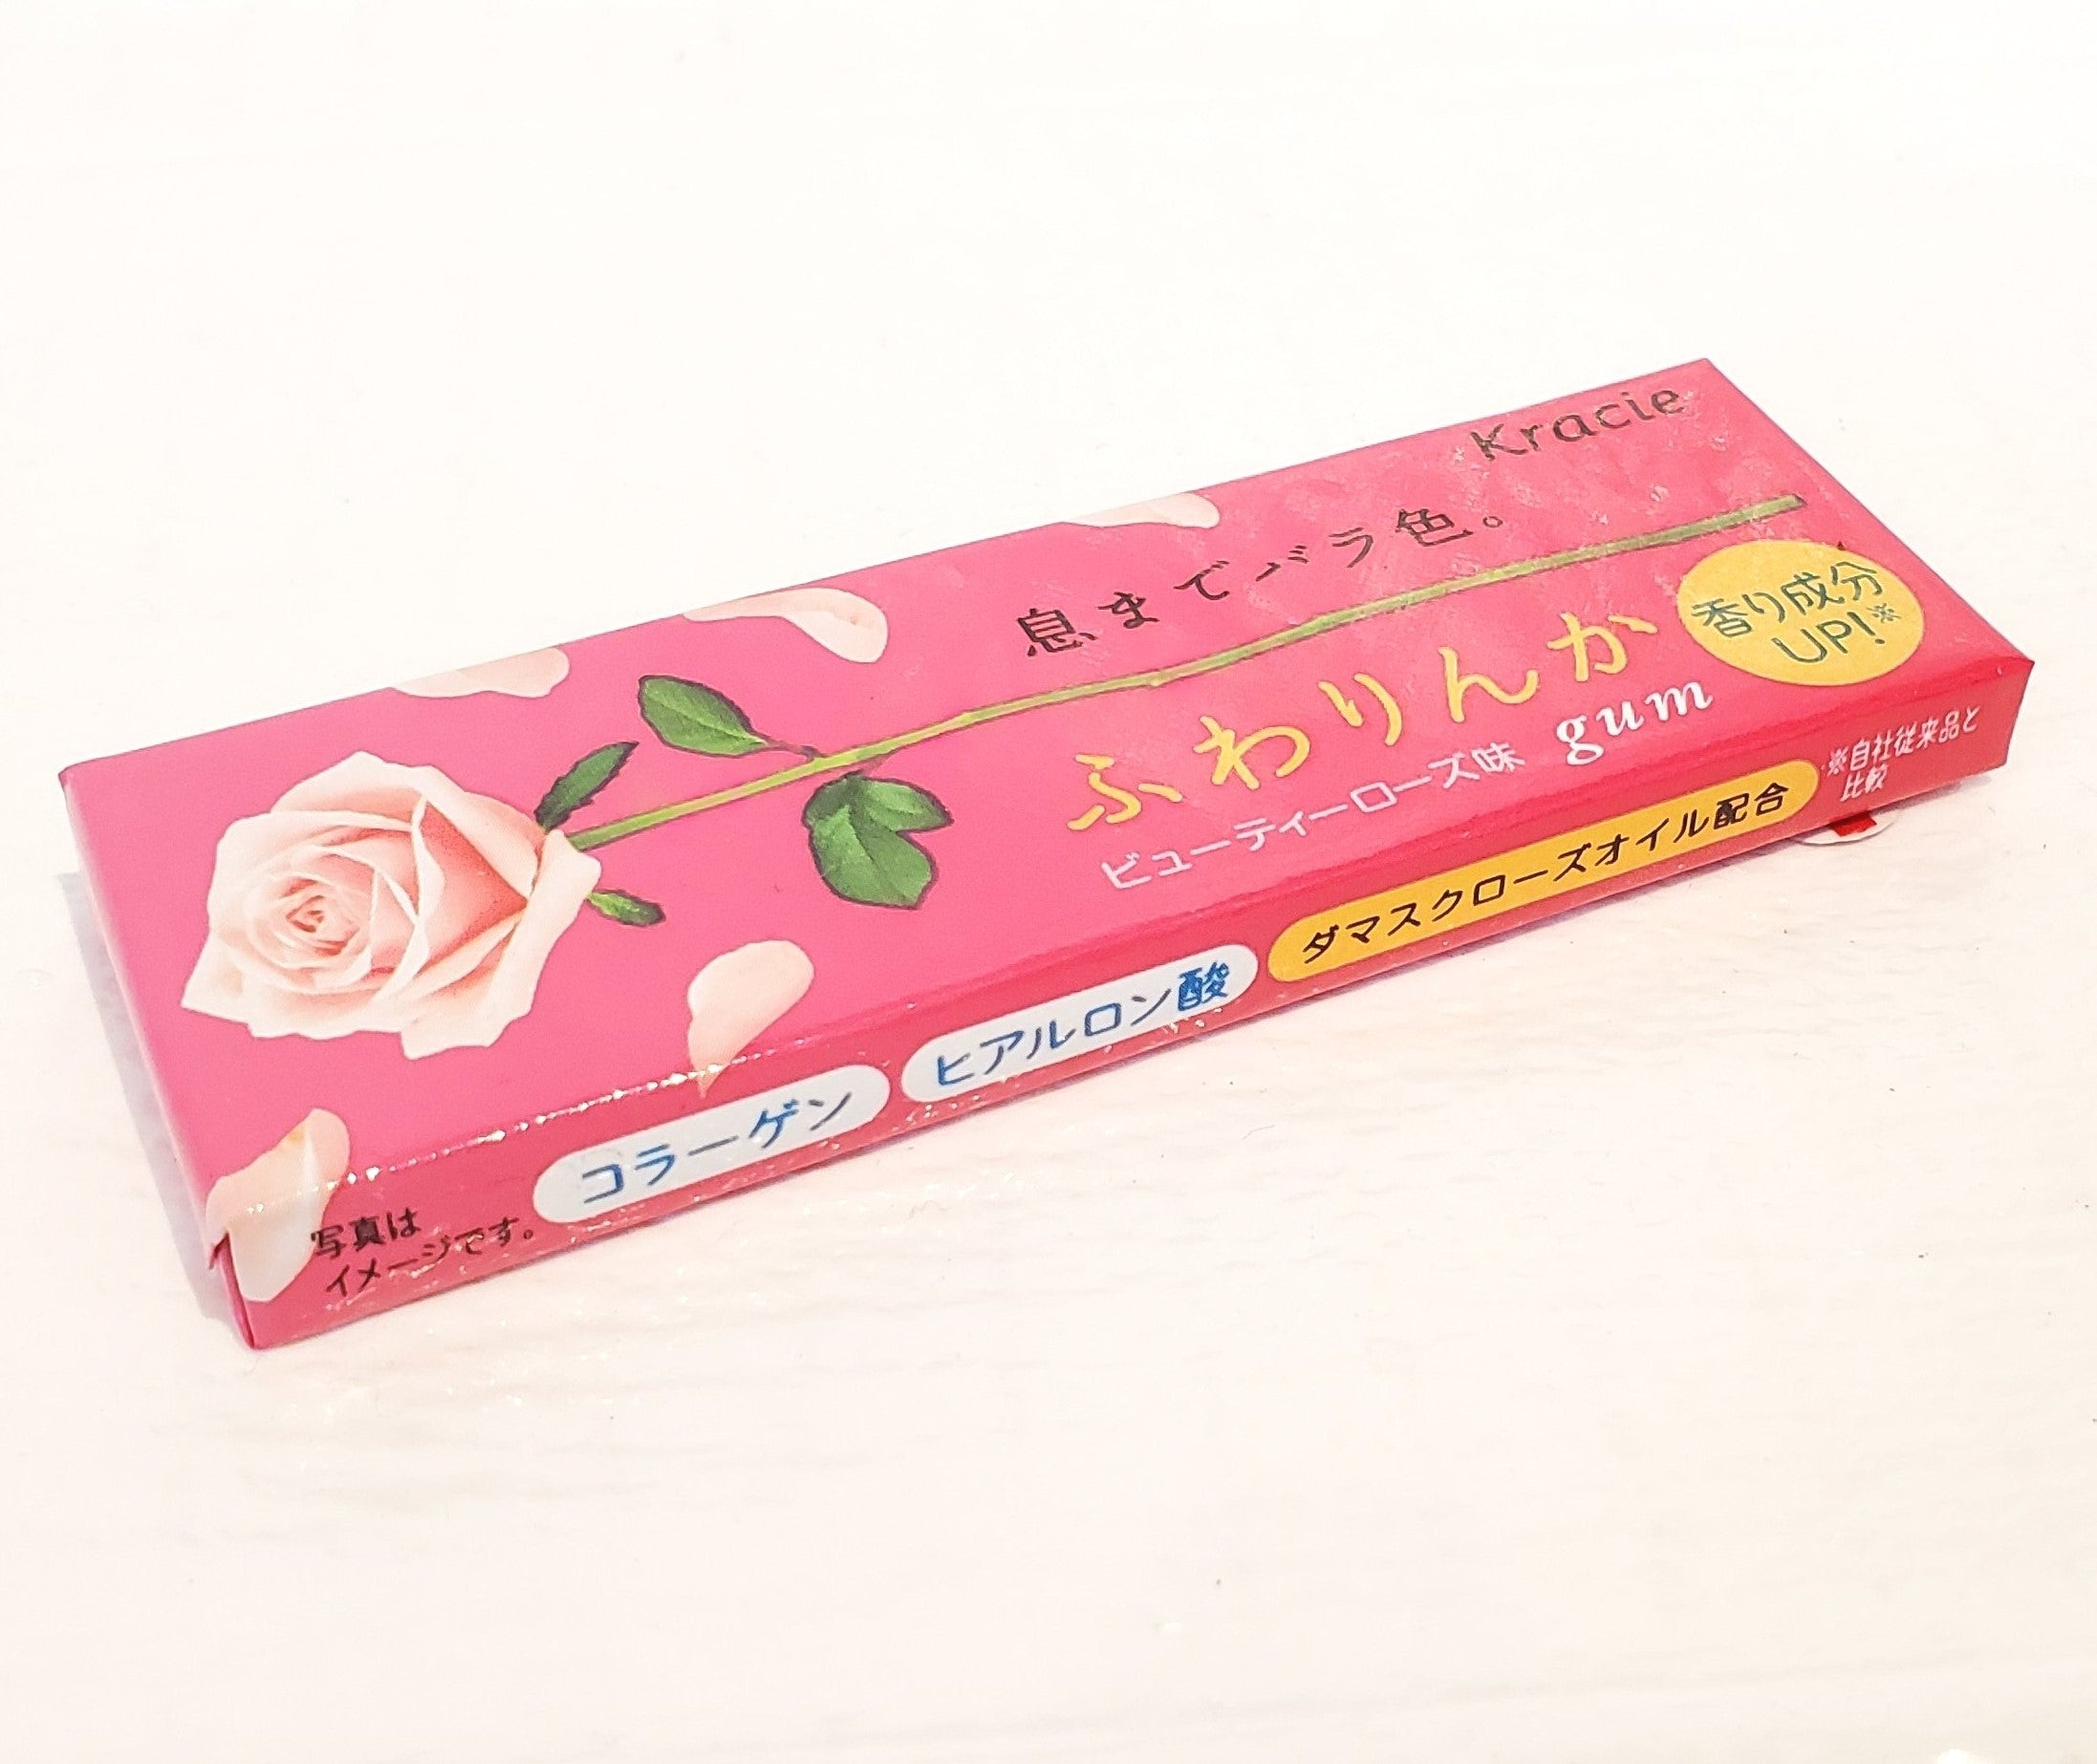 Kracie beauty rose chewing gum